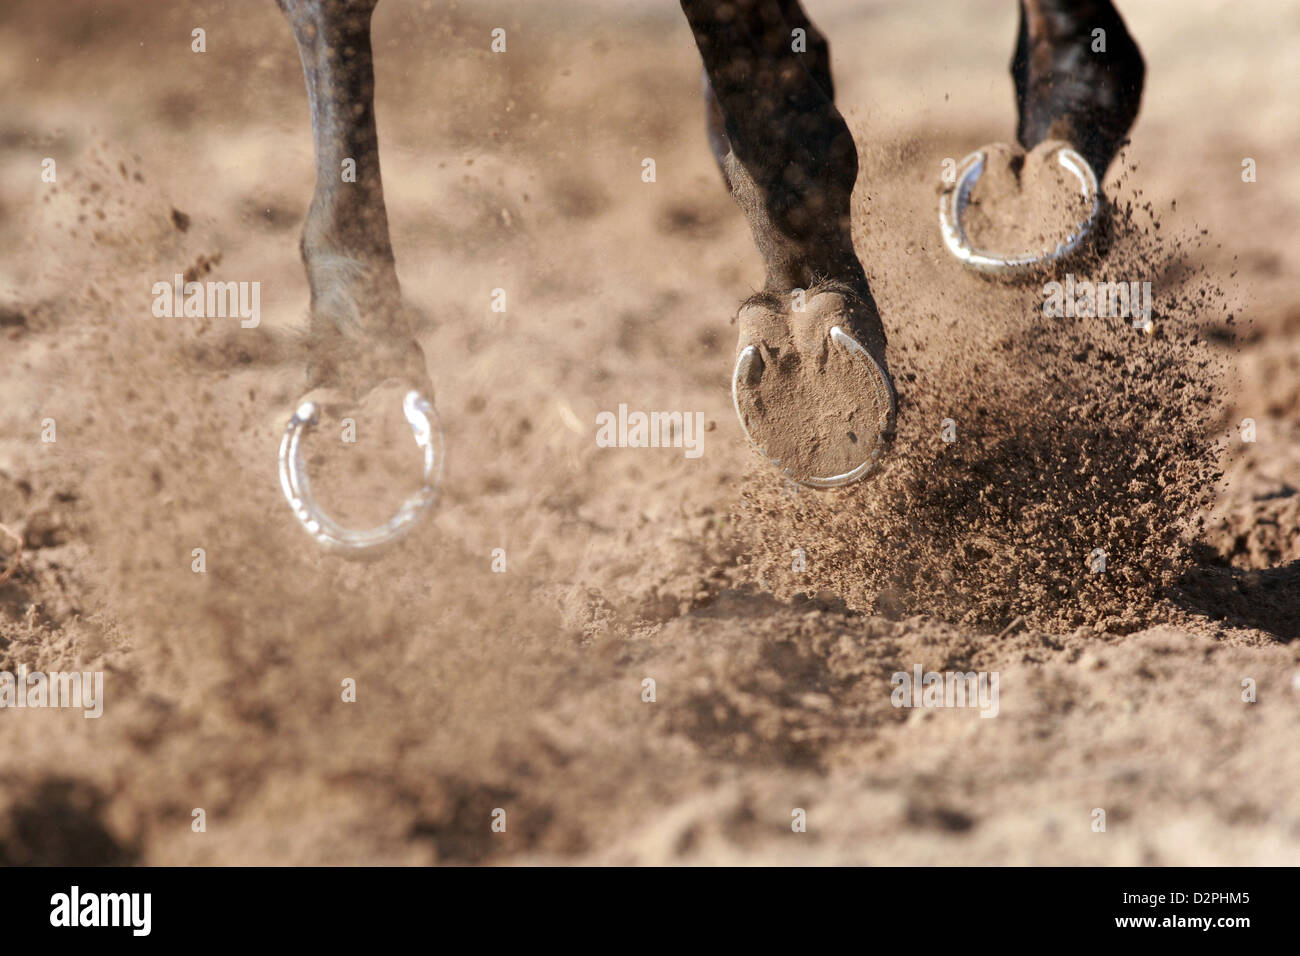 Neuenhagen, Germany, Detail, hooves galloping on sand - Stock Image